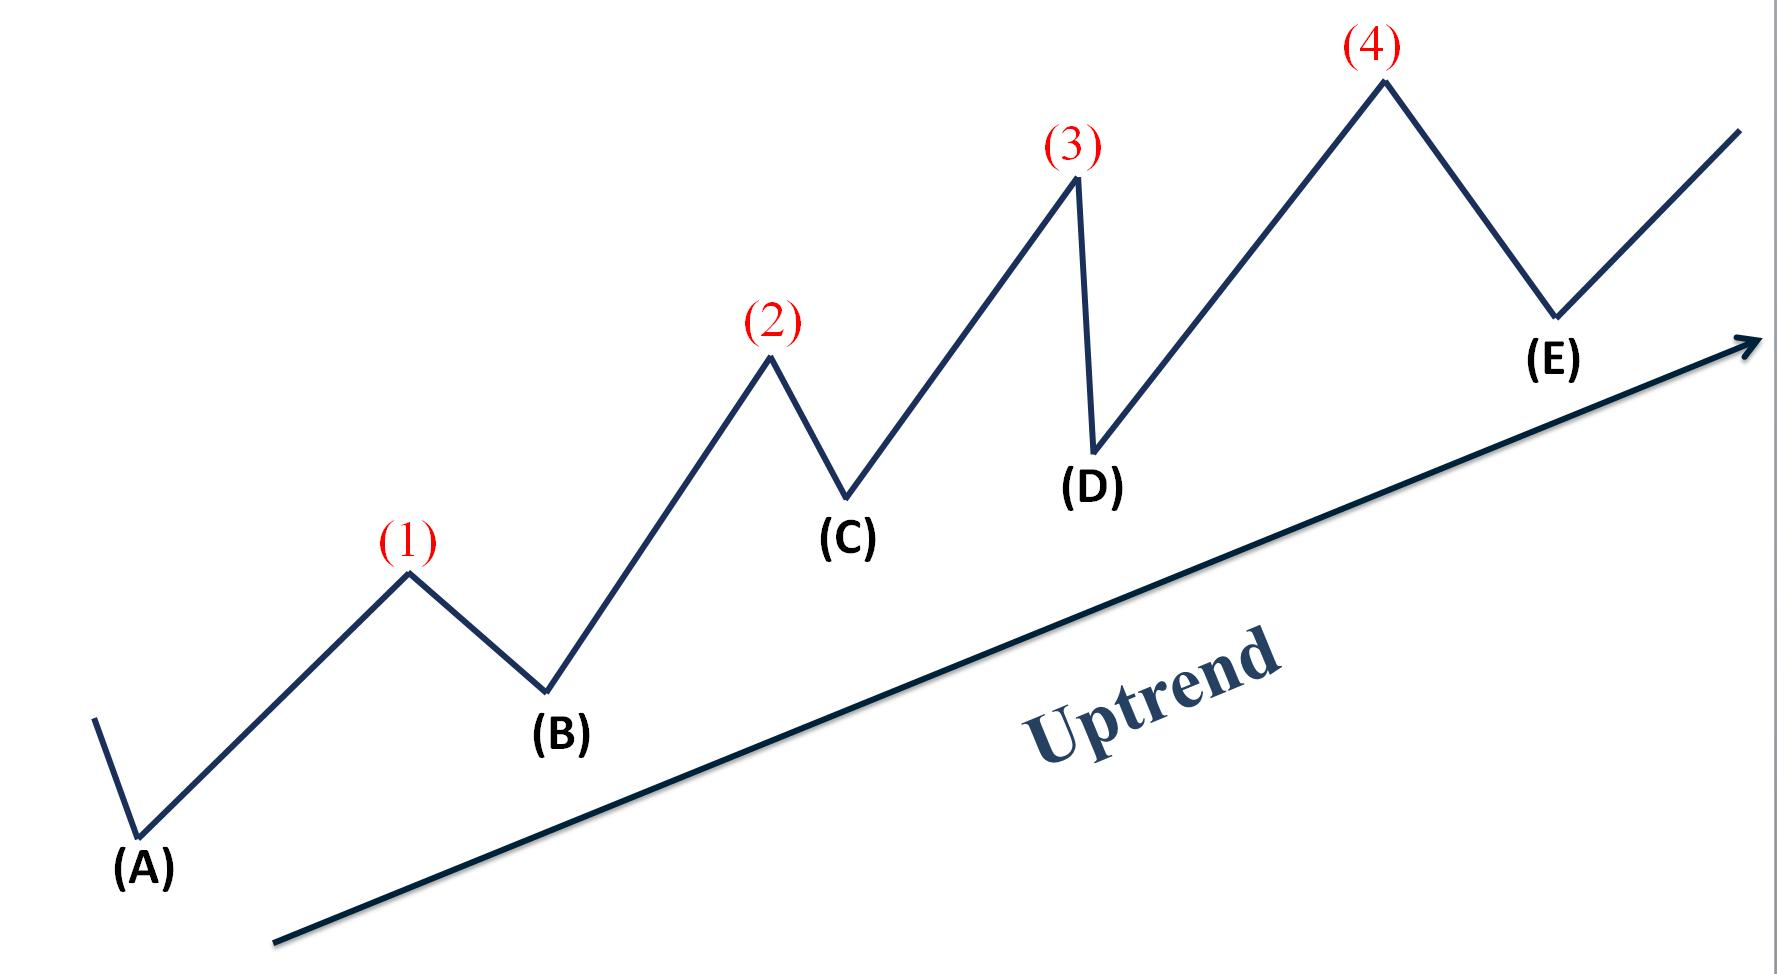 Basic characteristics of an uptrend